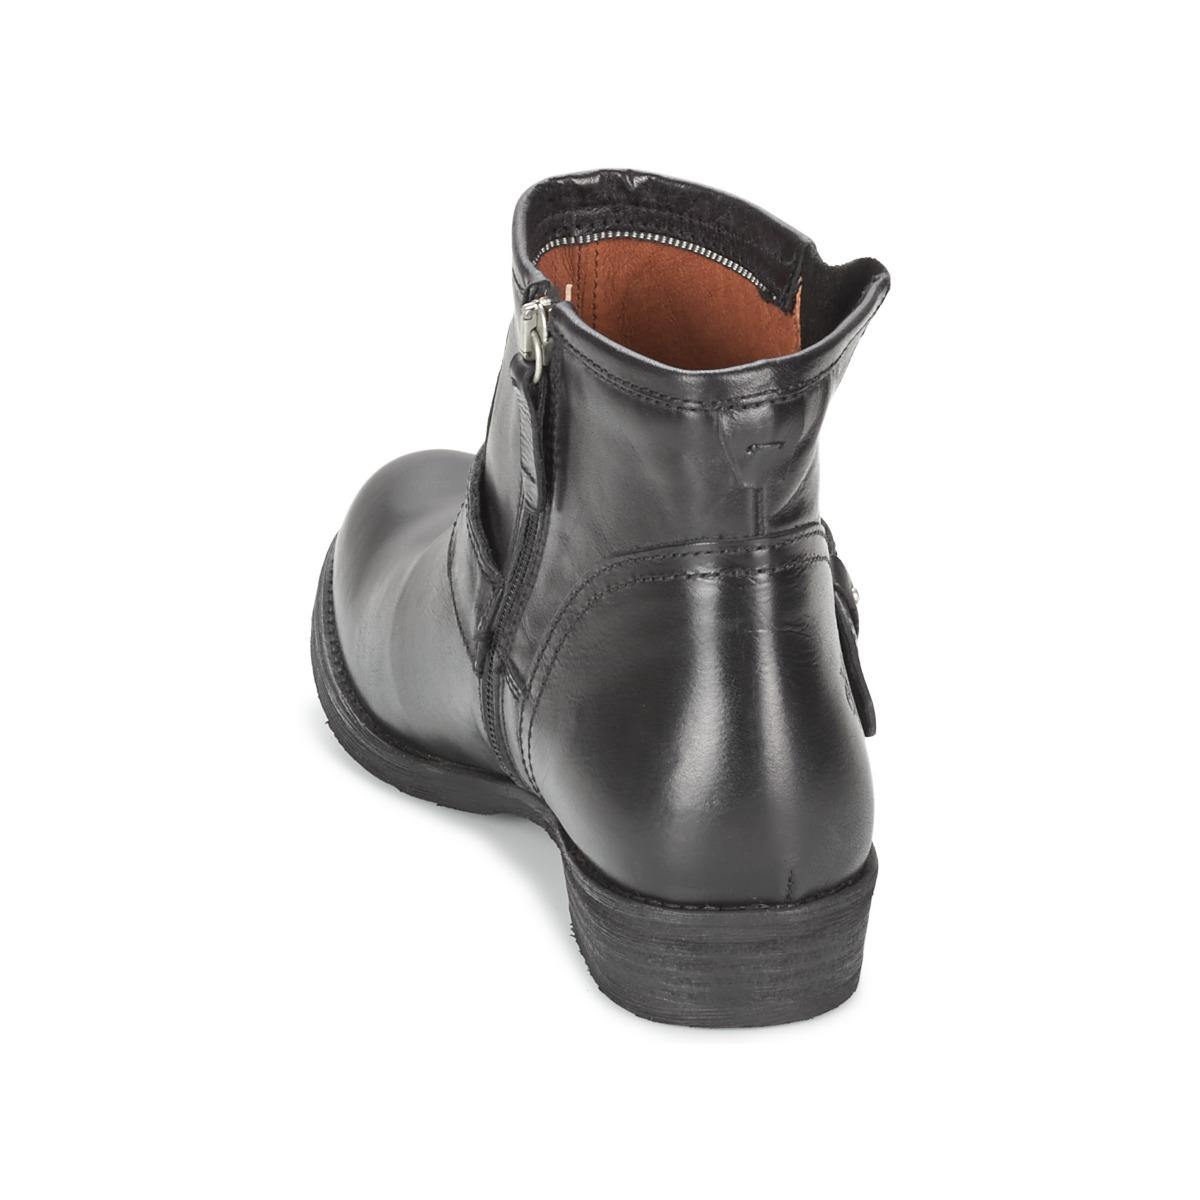 Marc O'polo Alice Women's Mid Boots In Black